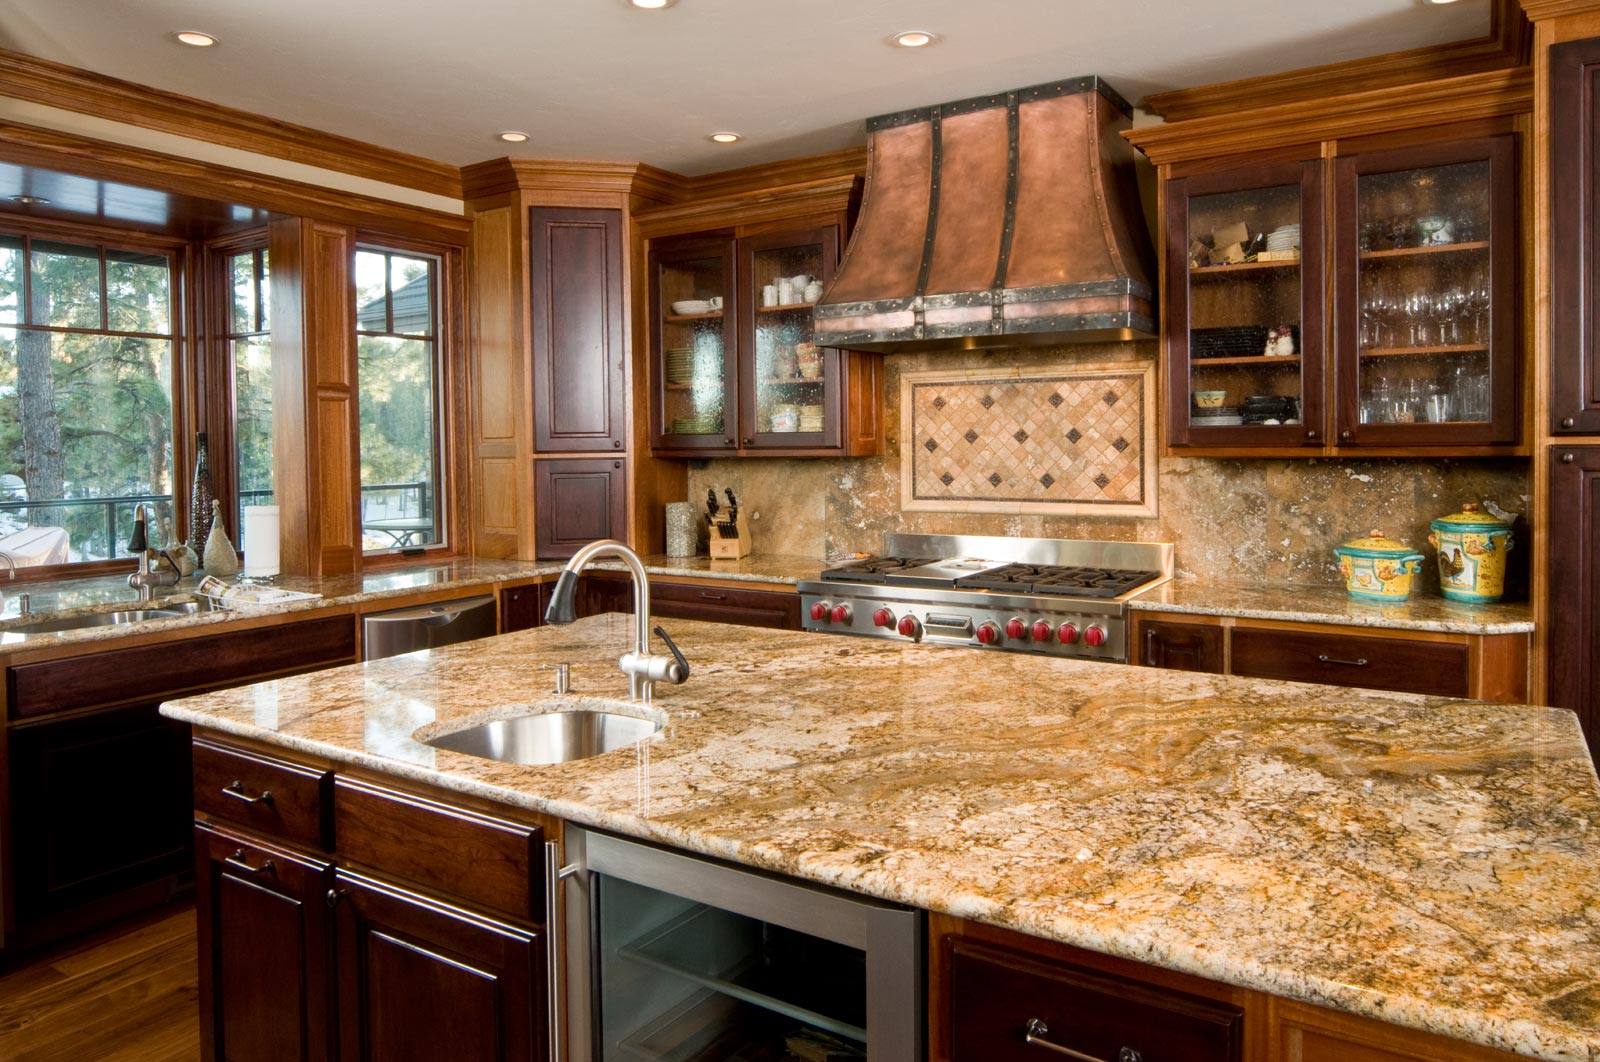 kitchen countertops many older kitchens featured laminate countertops